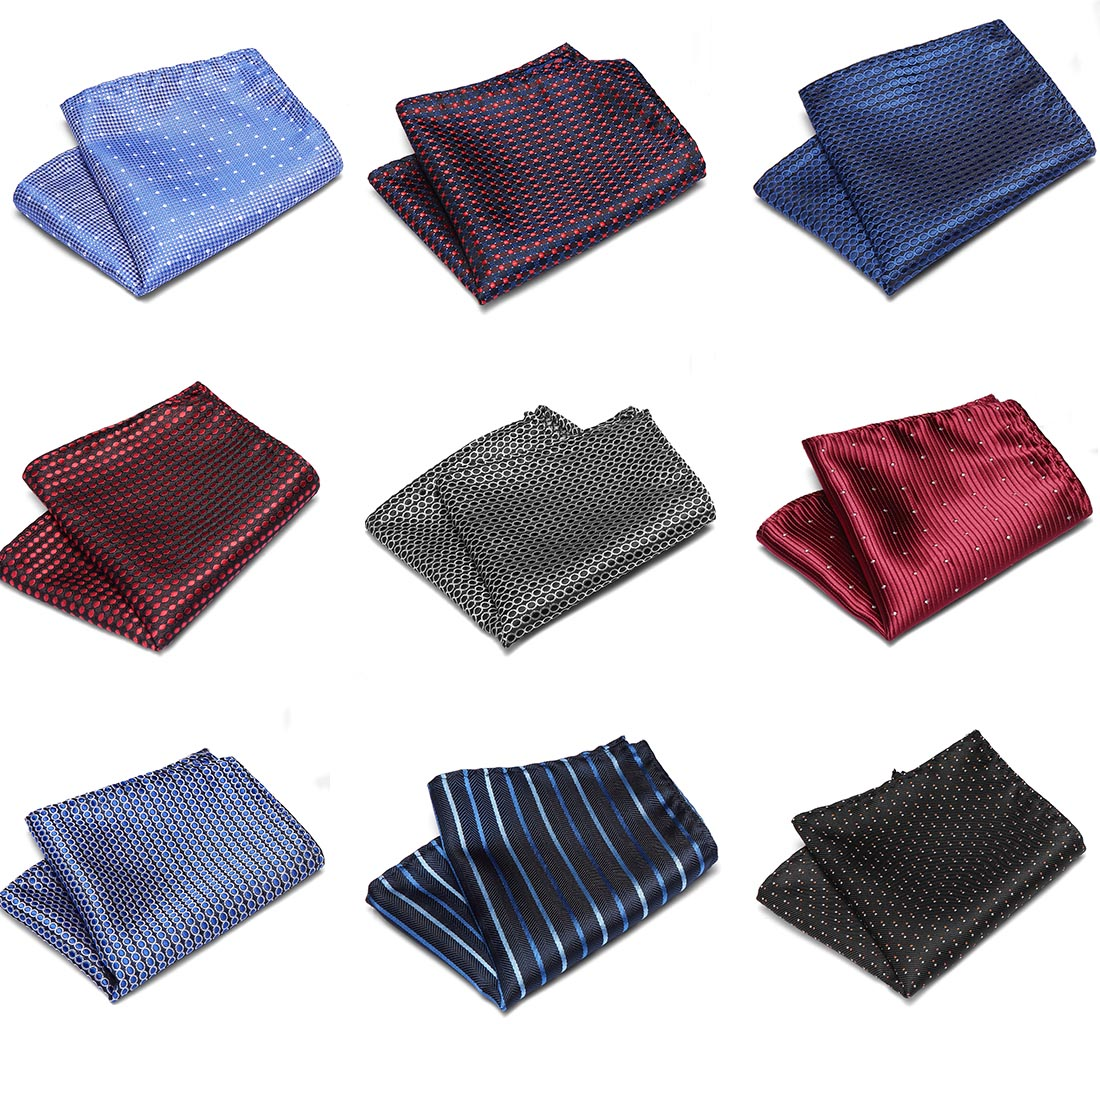 2020 Classic  Hankerchief  Scarves Vintage Silk  Paisley Hankies Men's Pocket Square Handkerchiefs Chest Towel